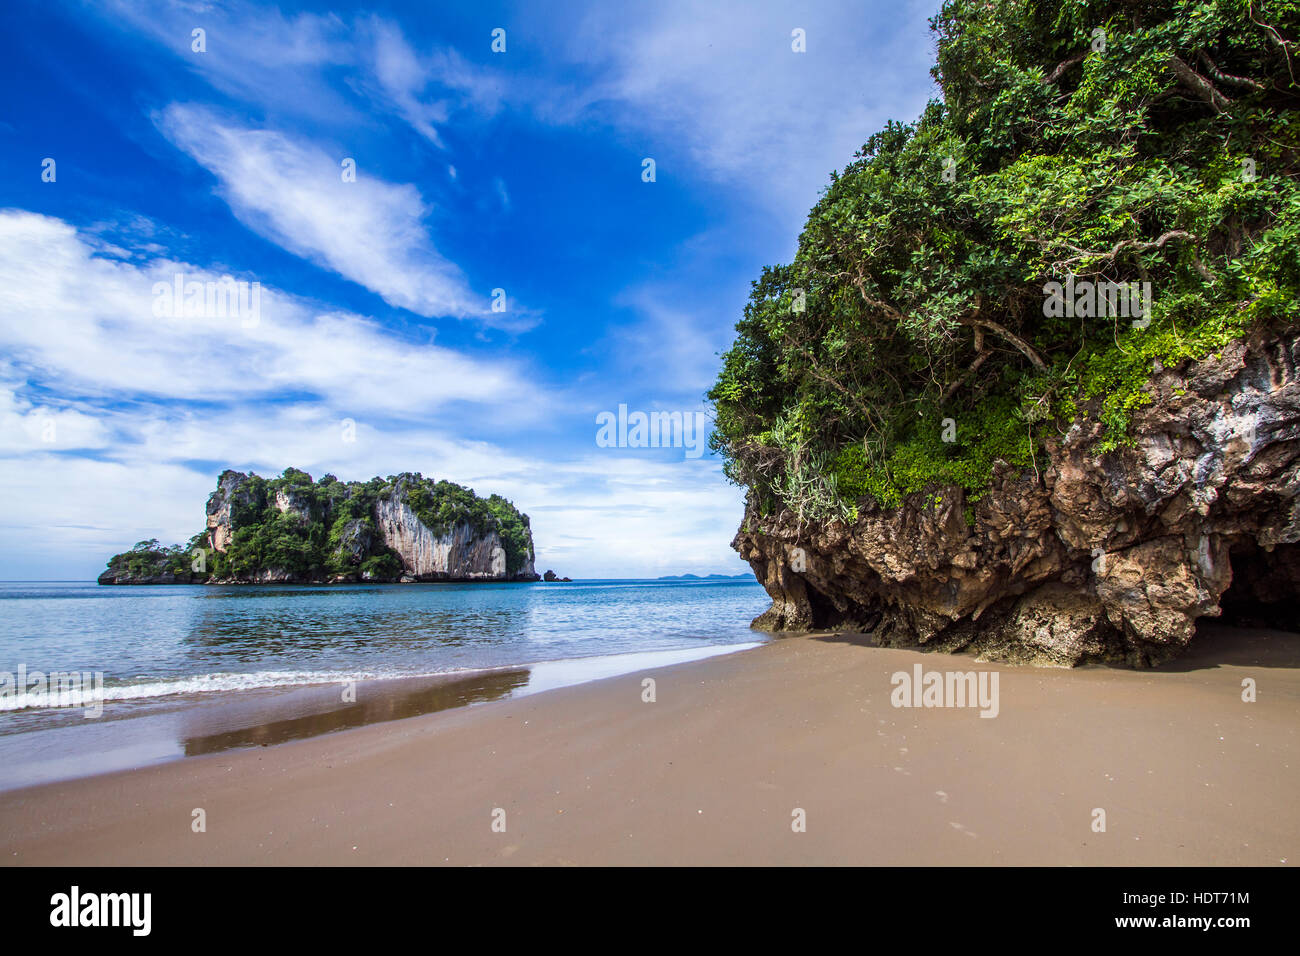 Beach in Hat Chao Mai national park in Thailand - Stock Image